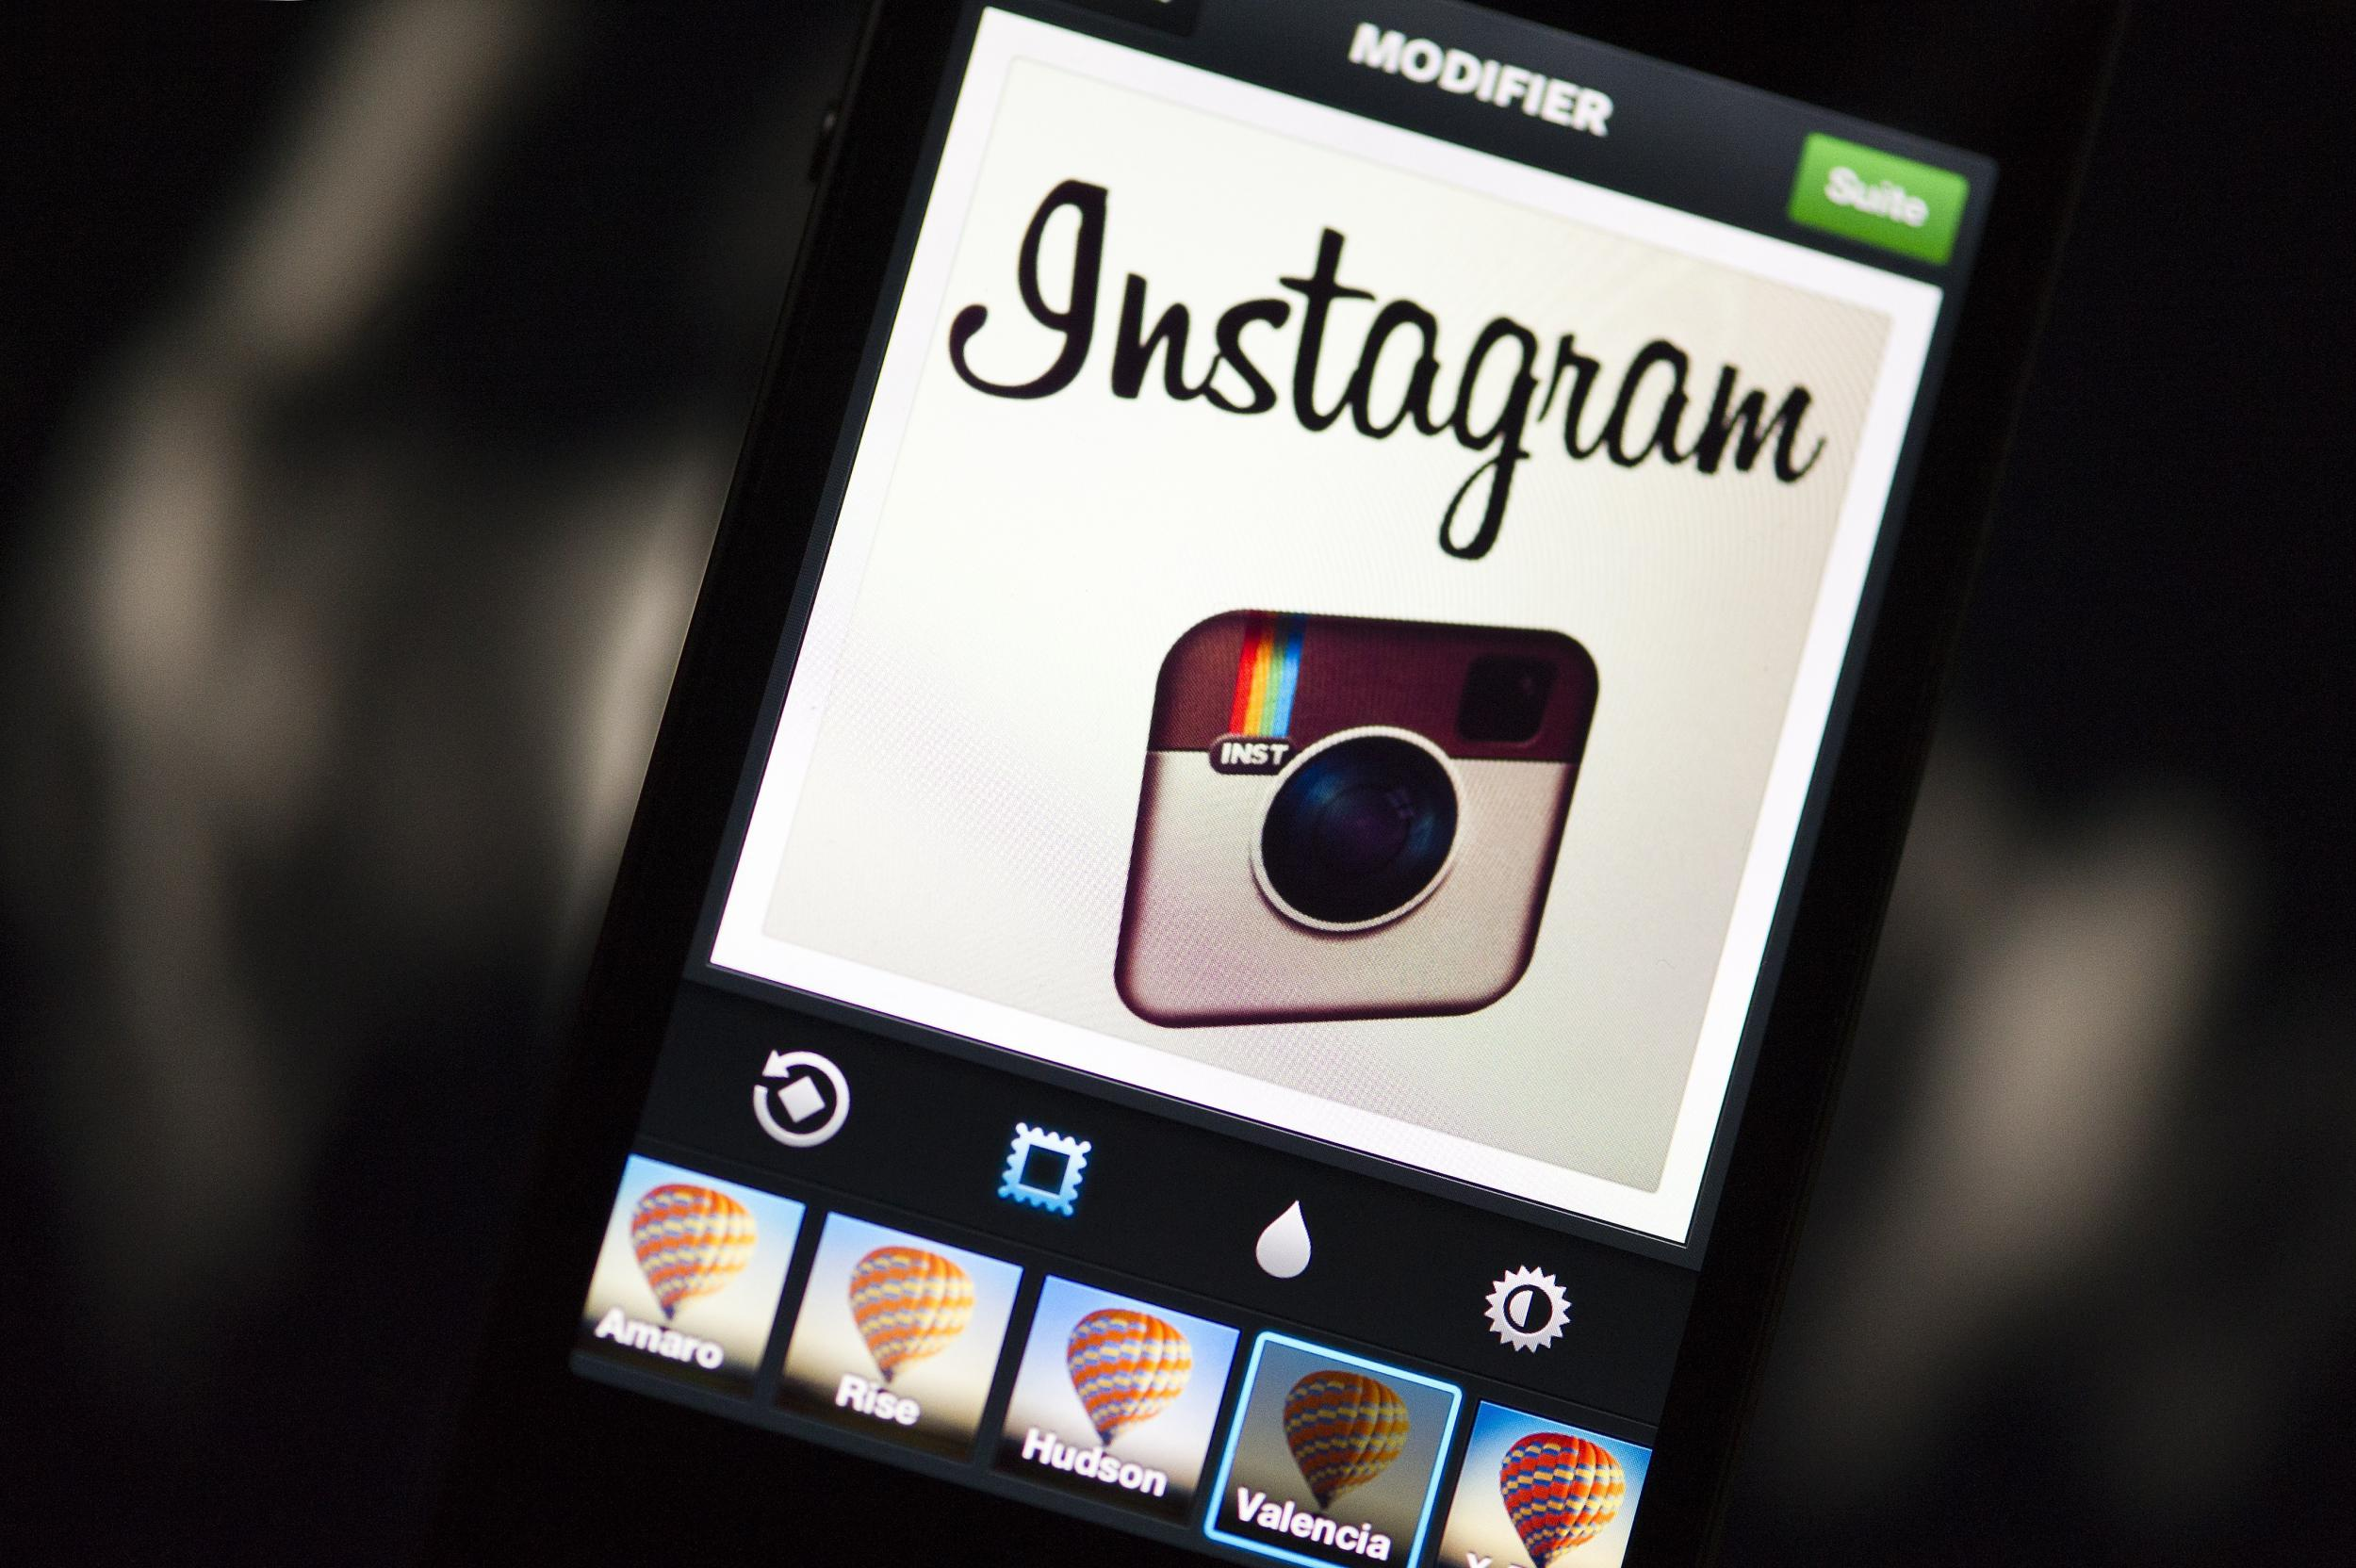 Instagram launches video sharing